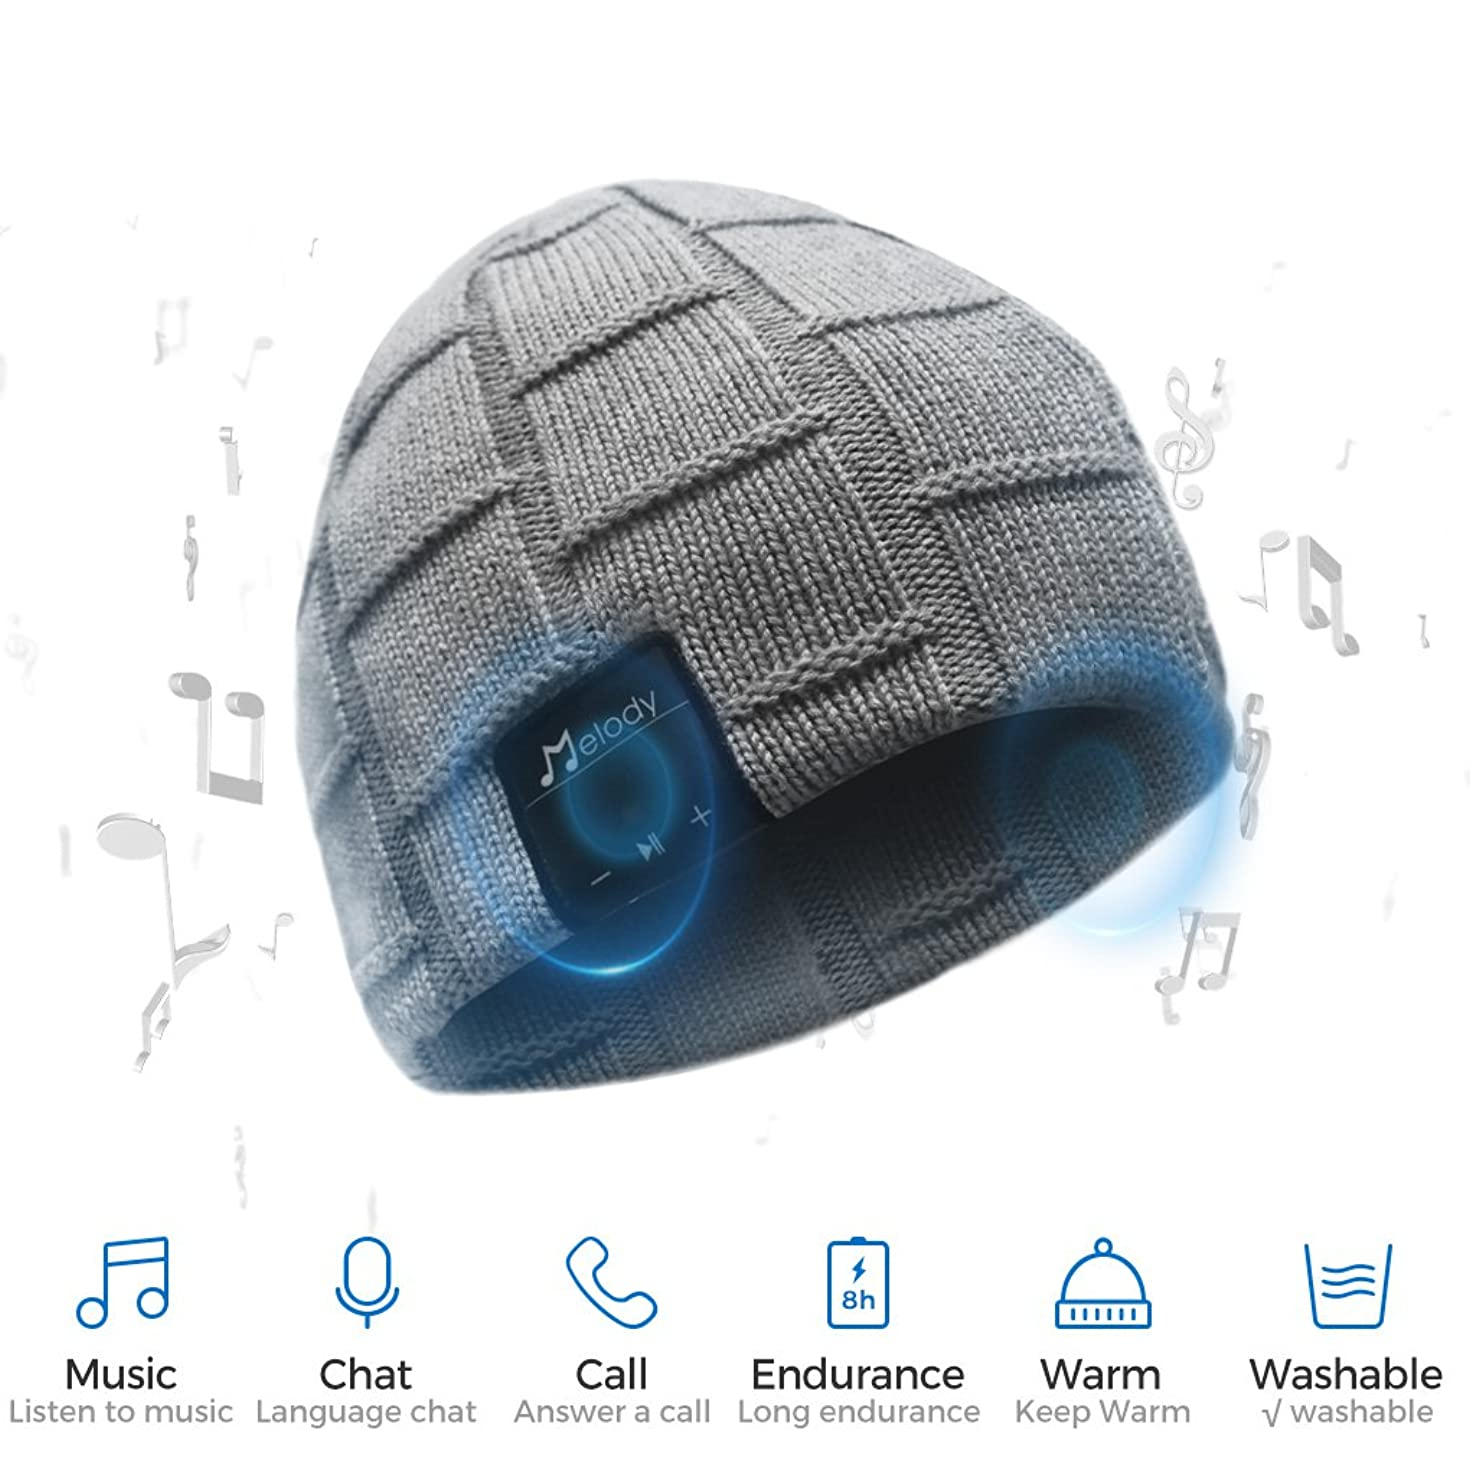 Bluetooth Beanie Hat, BCELIFE Wireless 4.0 Hands-Free Knit Music Cap with HD Stereo Speaker Headphone Mic Rechargeable USB for Winter Fitness Outdoor Sports &Christmas Gifts(Gray)